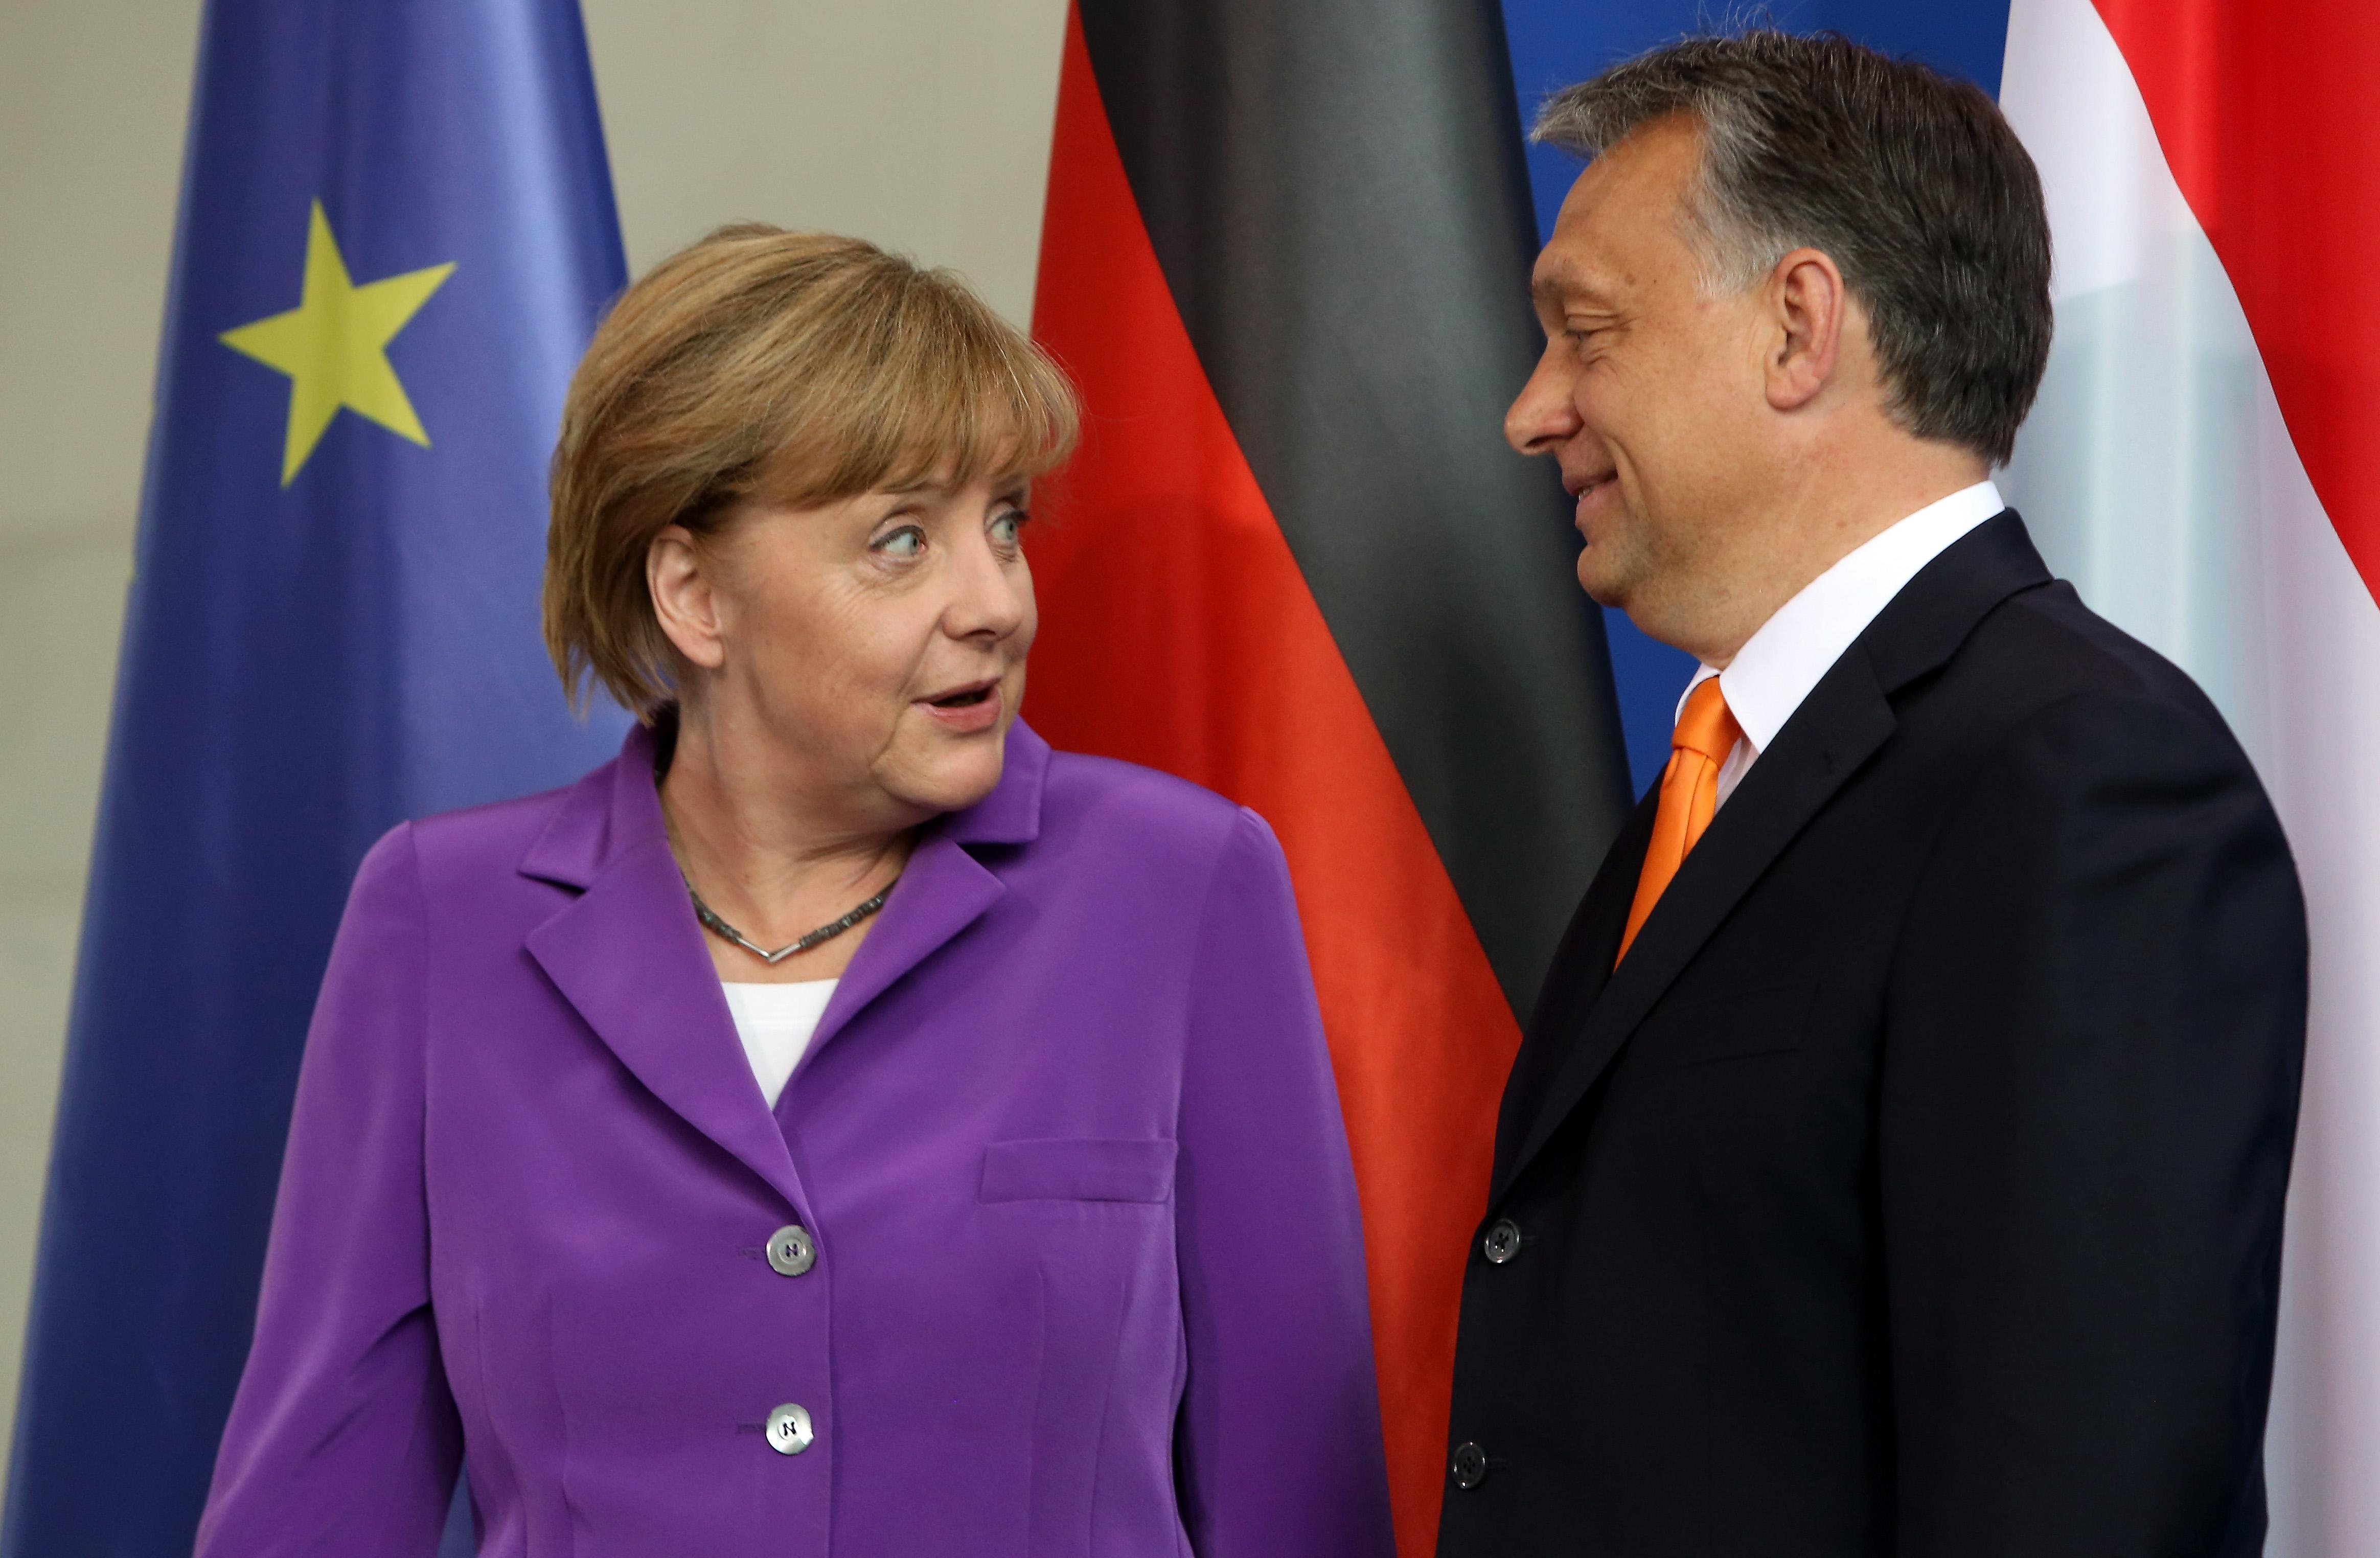 Hungary under pressure to pick sides in Russia-EU standoff